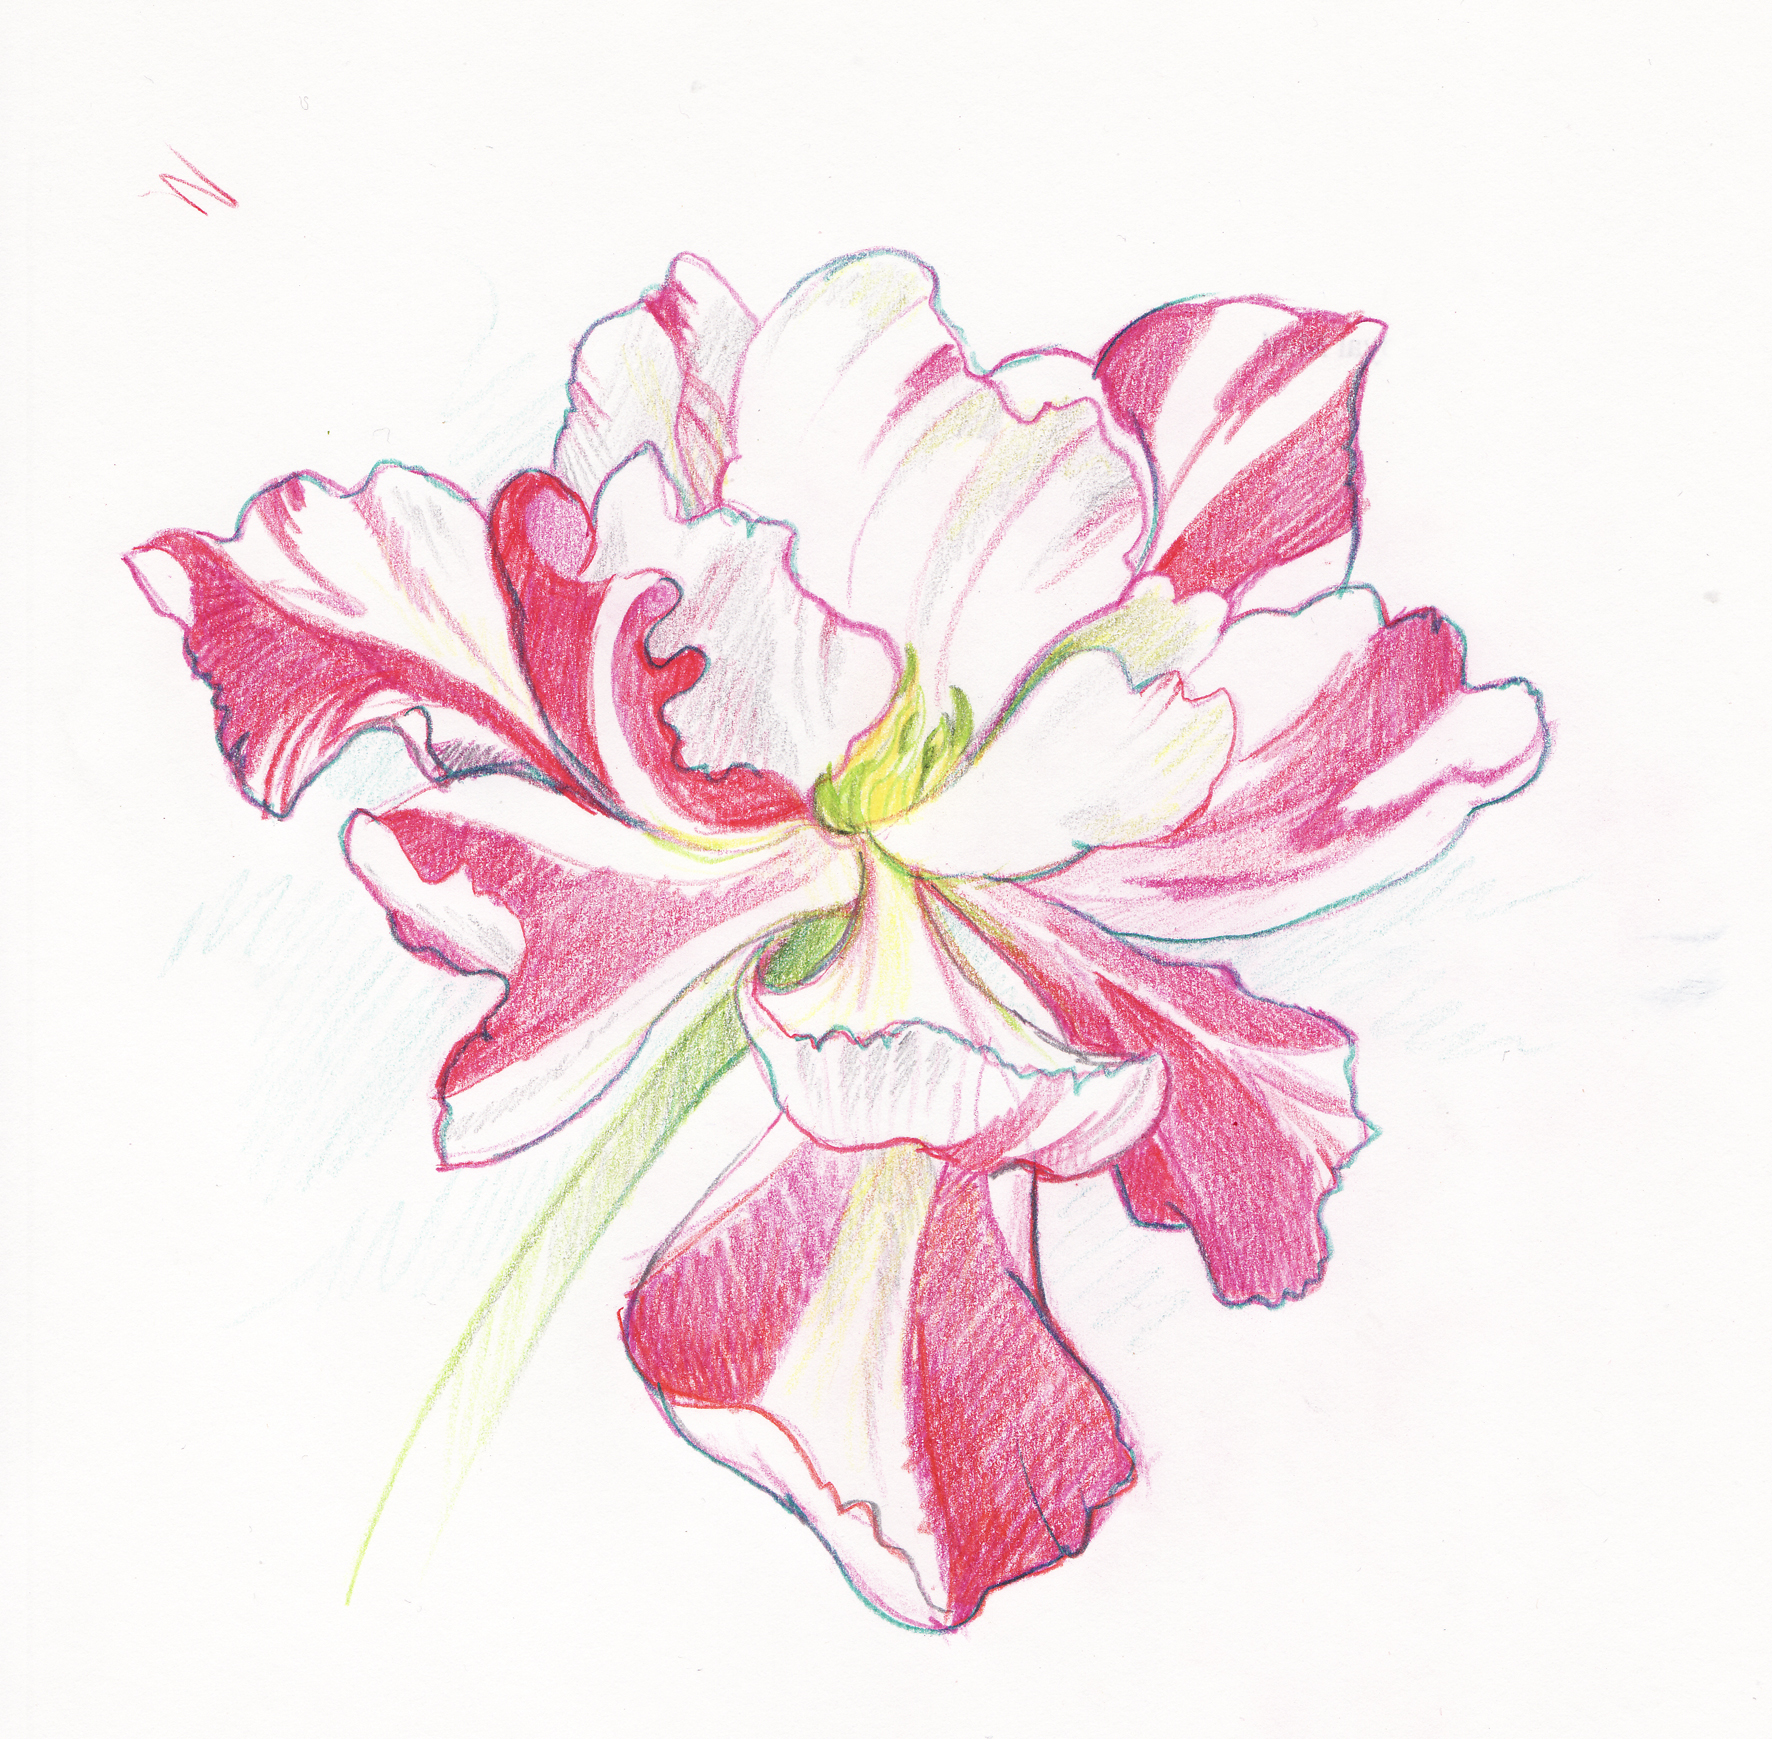 Pink flower drawing at getdrawings free for personal use pink 1772x1739 flower debbie bellaby illustration mightylinksfo